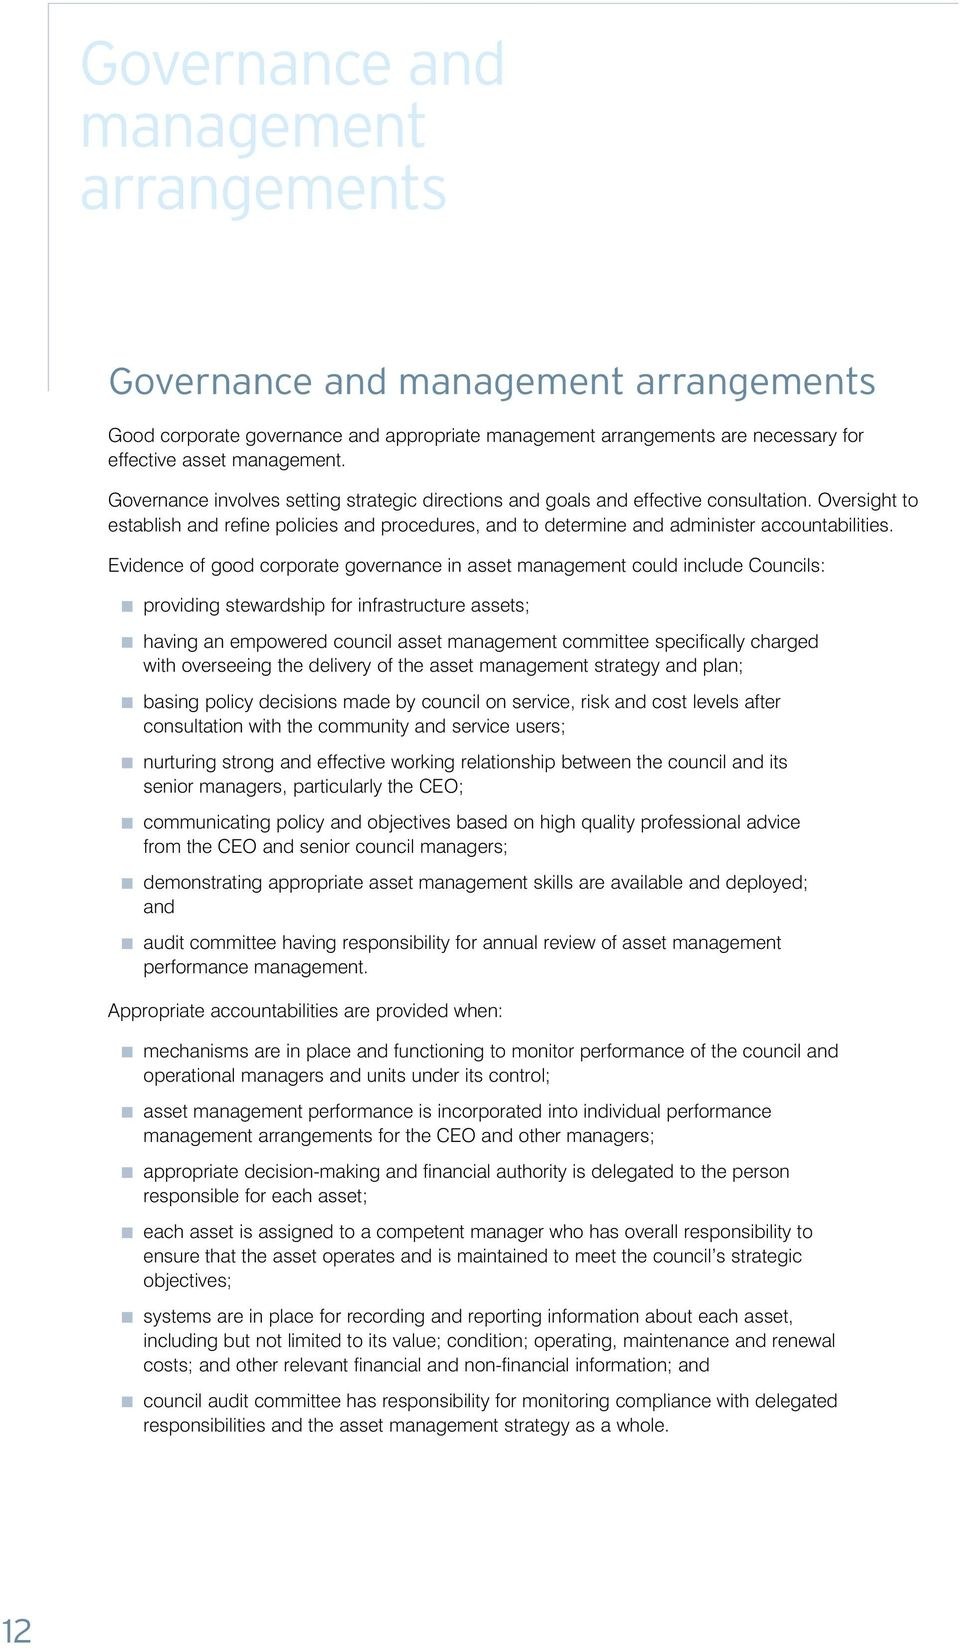 Evidence of good corporate governance in asset management could include Councils: providing stewardship for infrastructure assets; having an empowered council asset management committee specifically